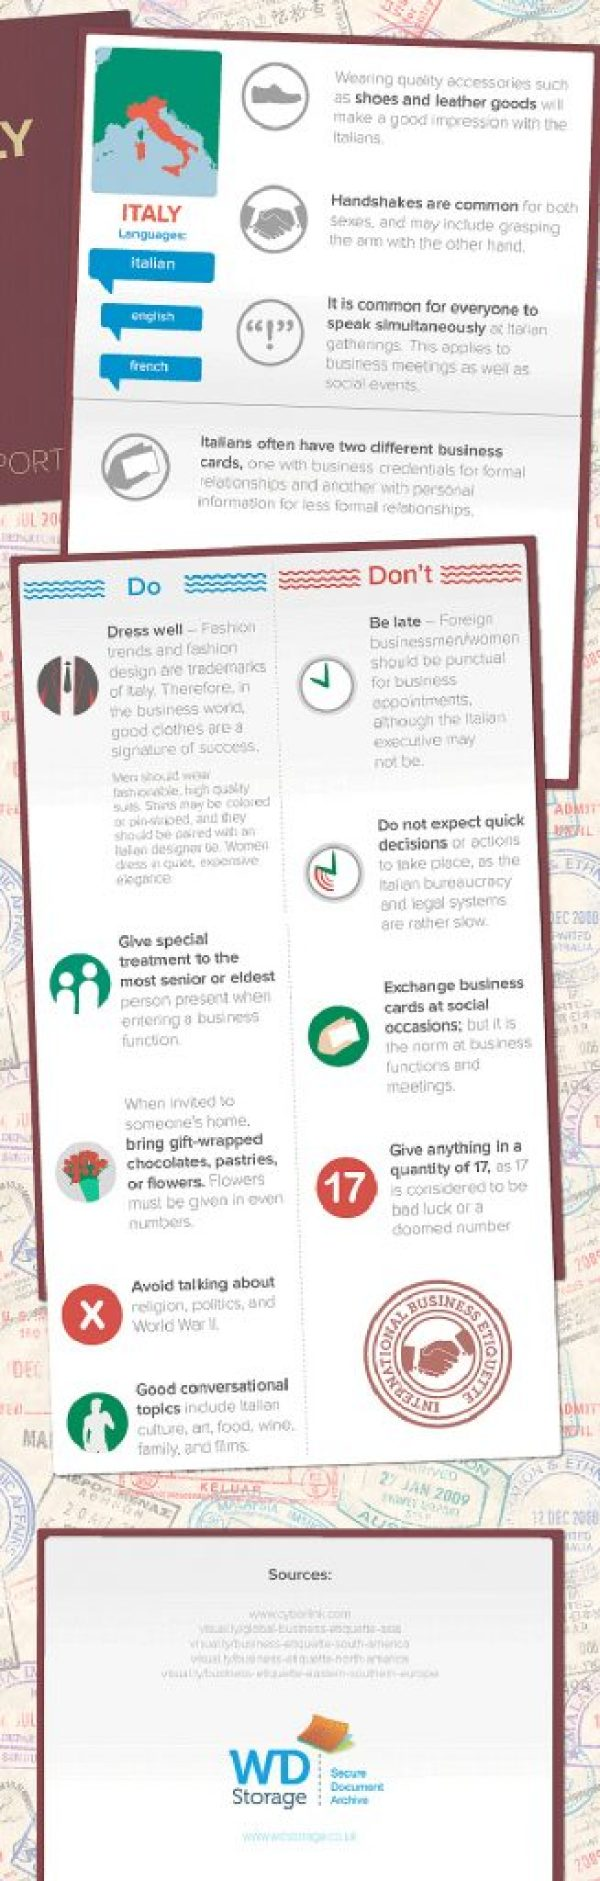 international-business-etiquette-and-customs-infographic-4